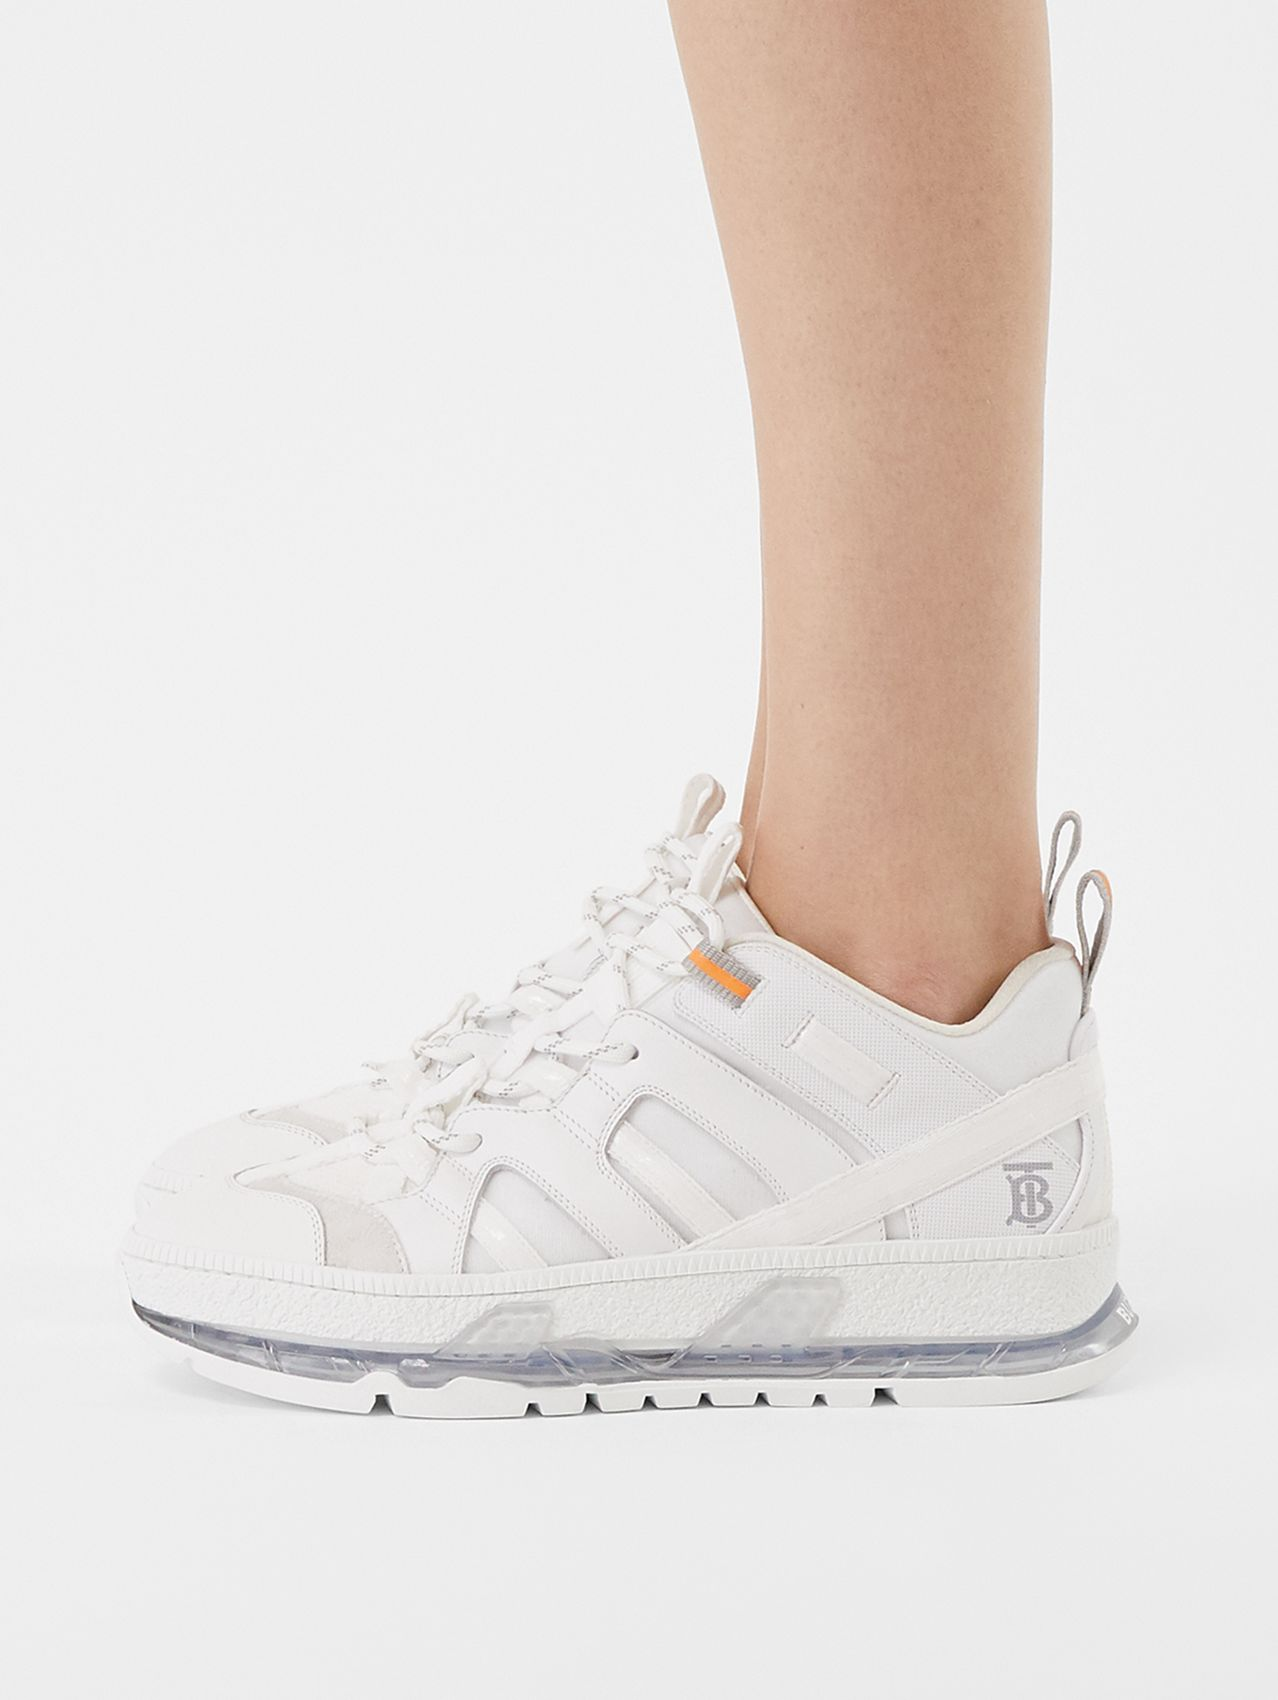 Nylon and Leather Union Sneakers in Optic White